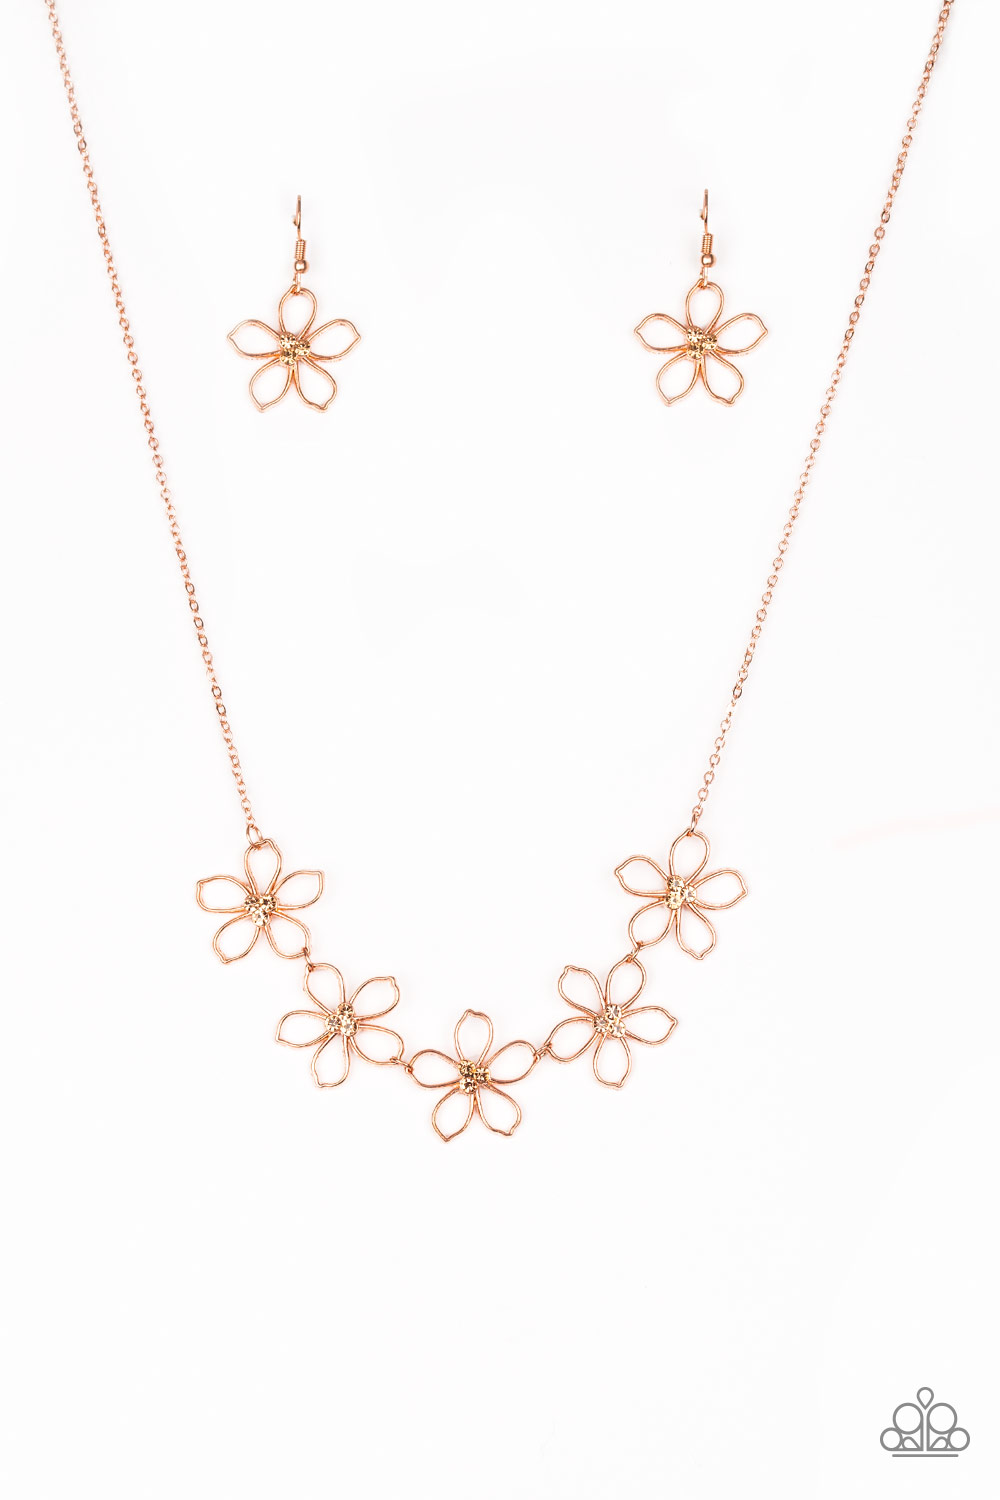 Copper Floral Necklace and Earring Set $5 my-bling.com